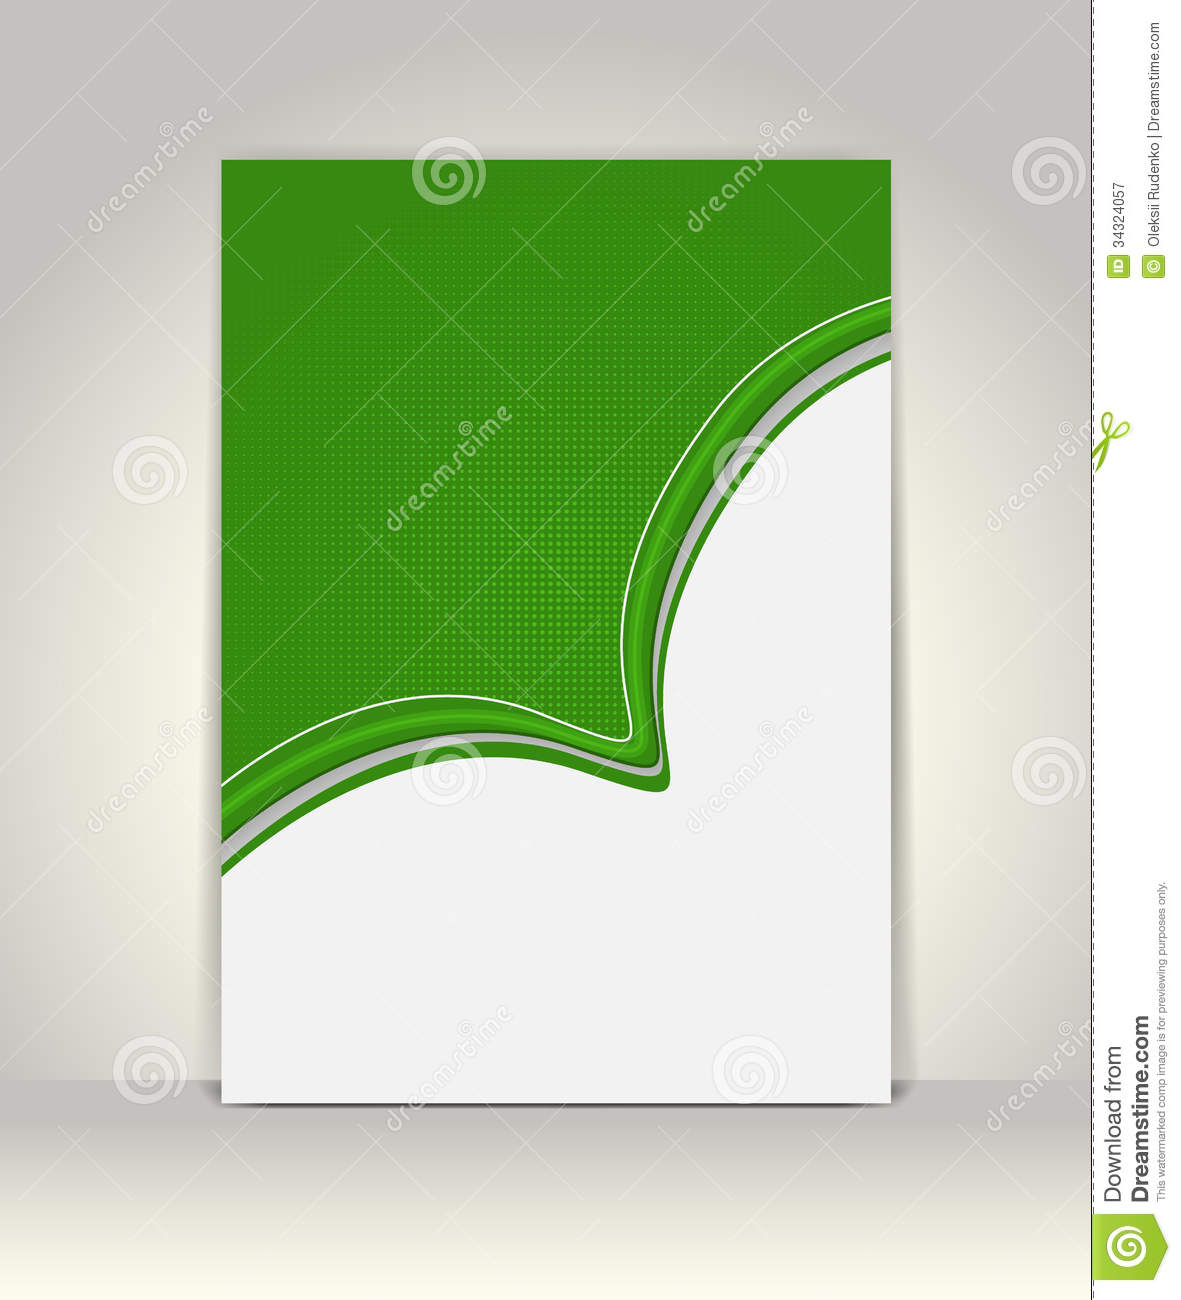 paper ad design templates - flyer or brochure template stock vector illustration of